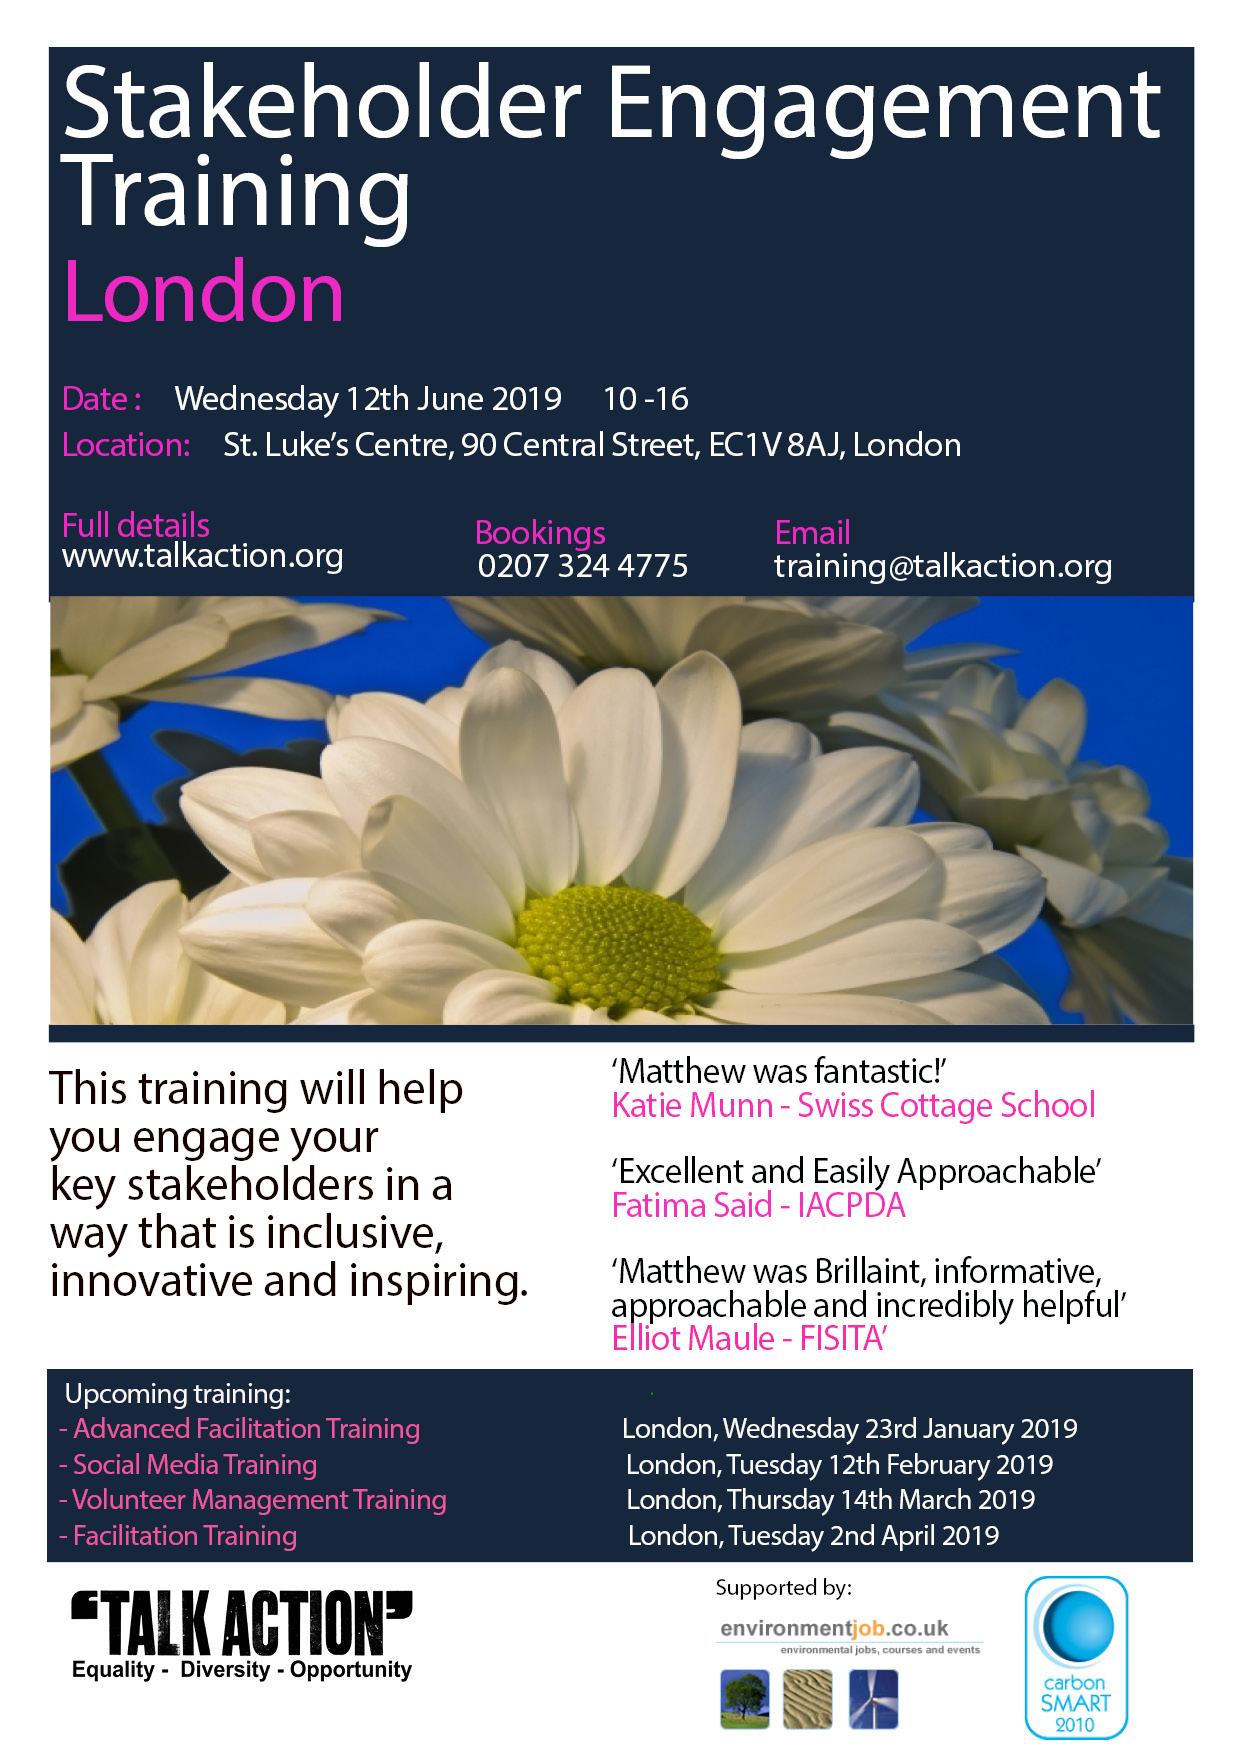 Stakeholder Engagement Training - London